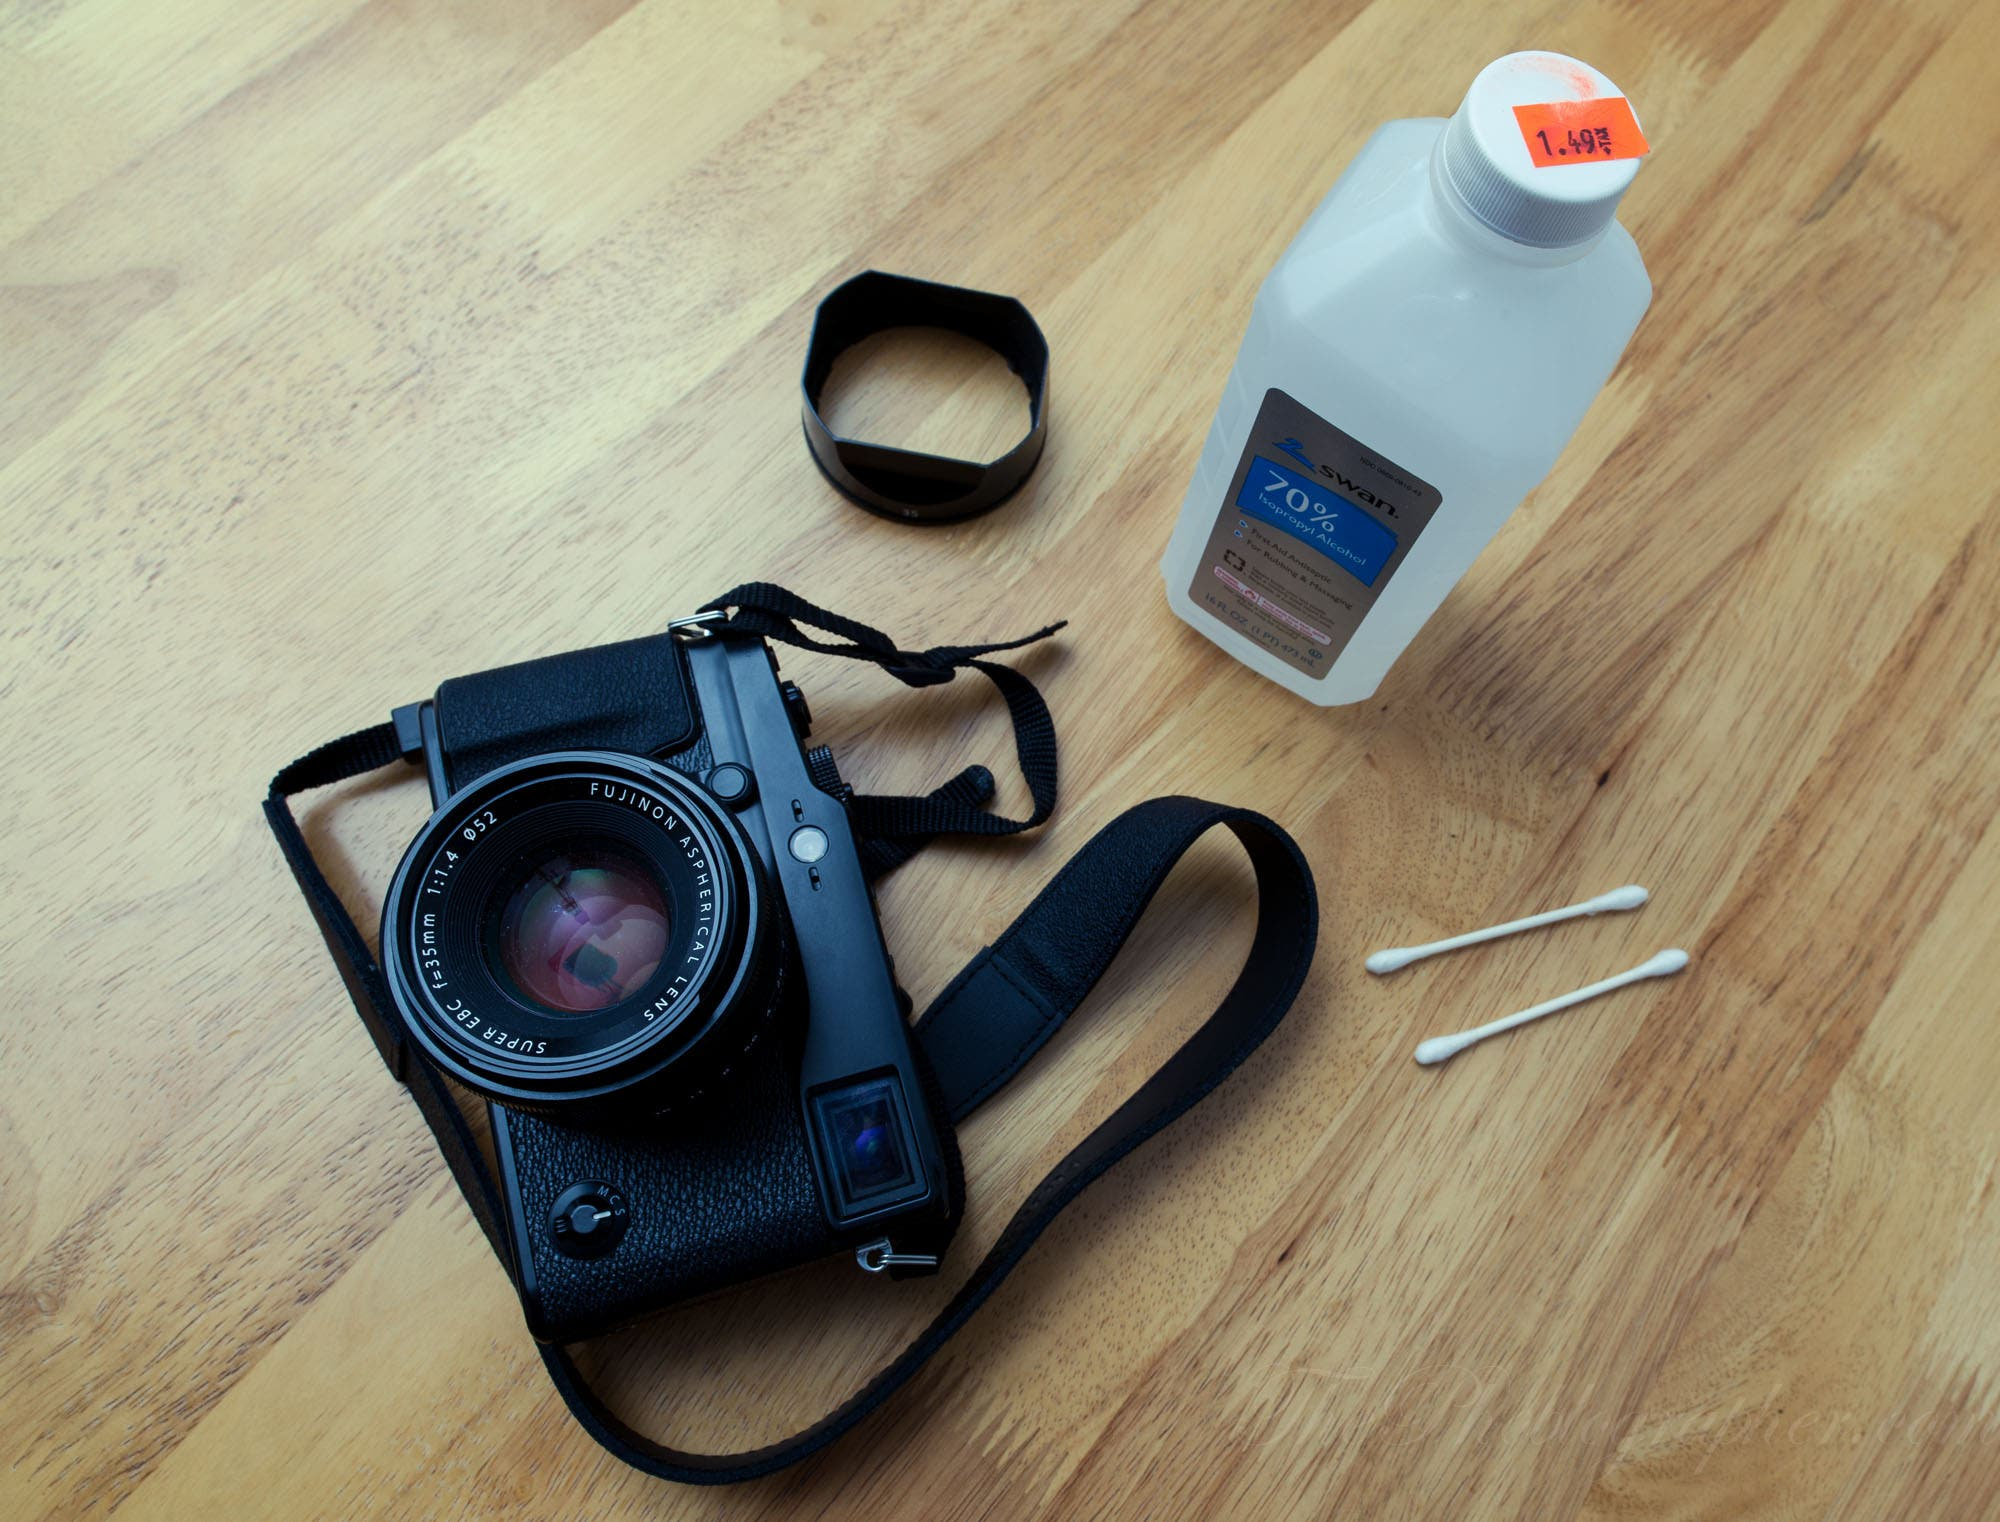 Useful Photography Tip #48: Autofocus Not Working Perfectly? Clean Your Contacts With Isopropyl Alcohol